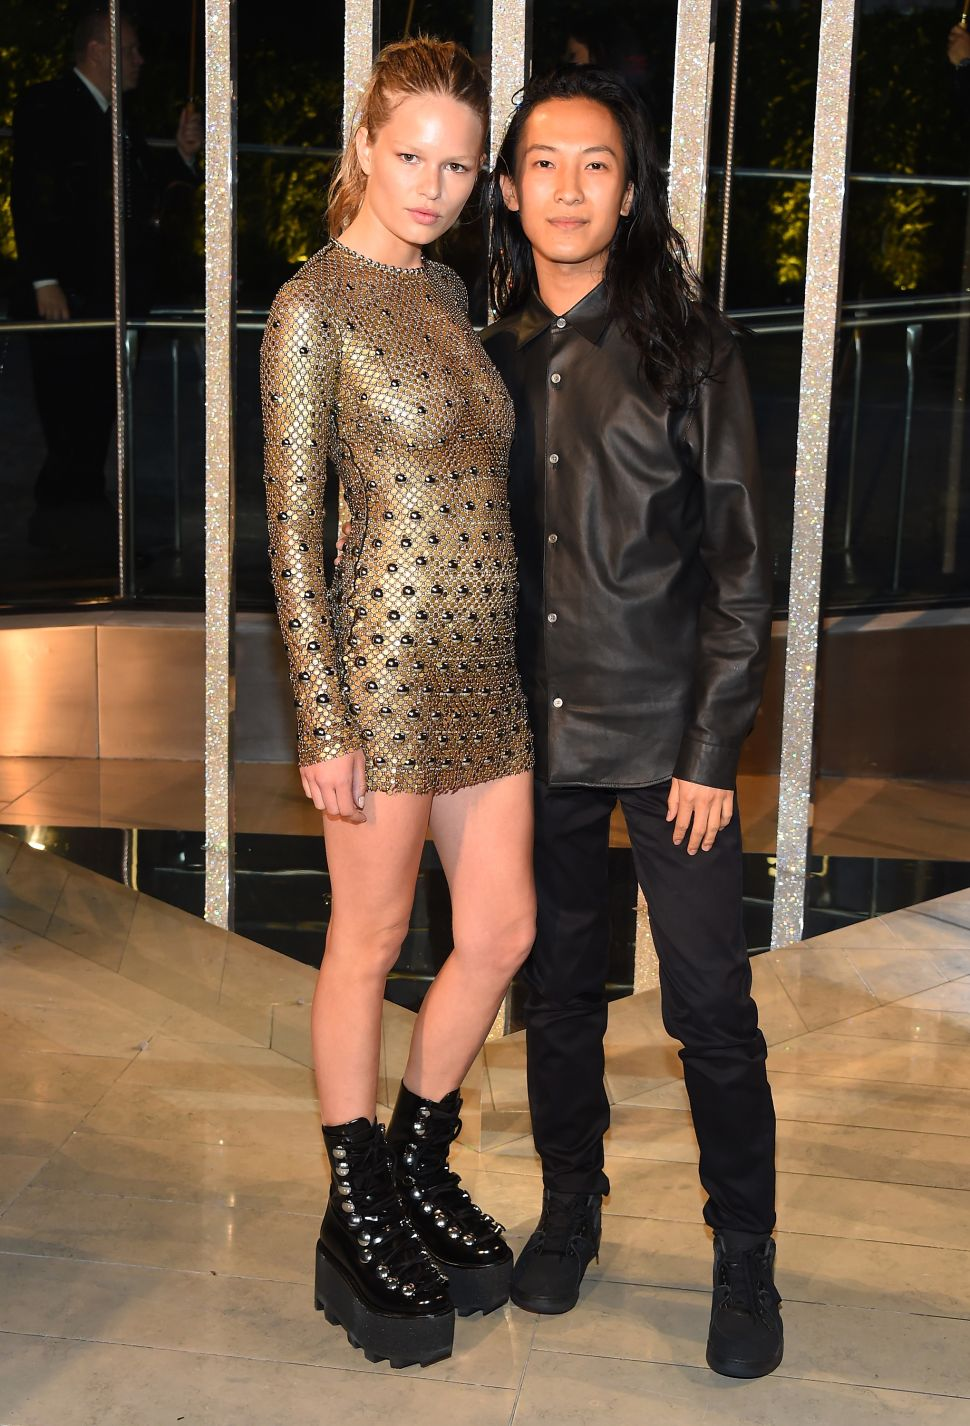 The Best Dressed Dates at the 2015 CFDA Awards